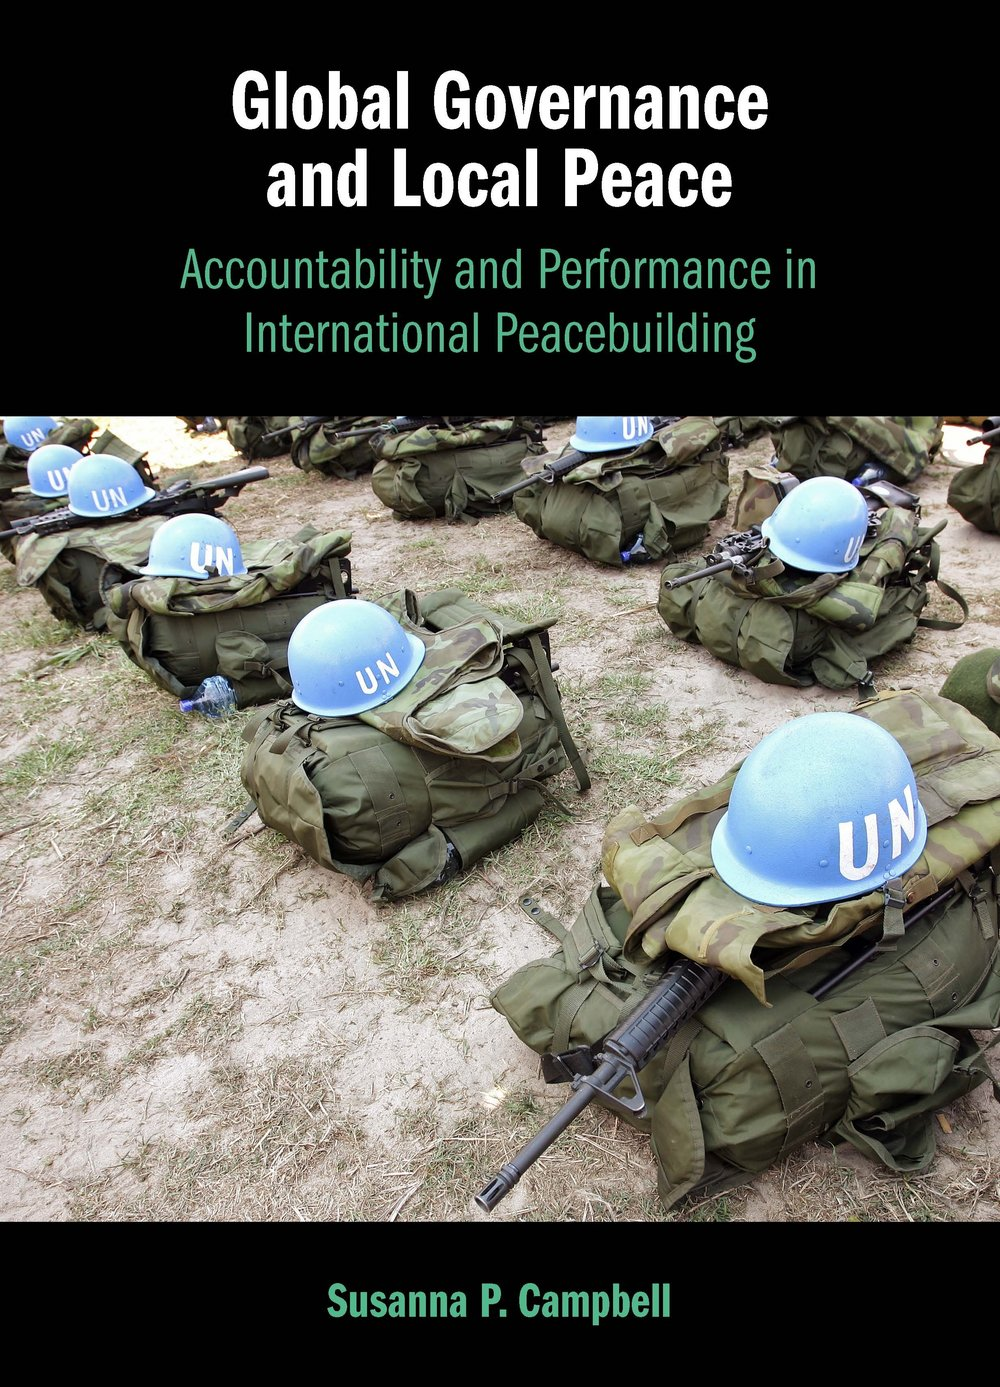 Global Governance and Local Peace_Cover.jpg